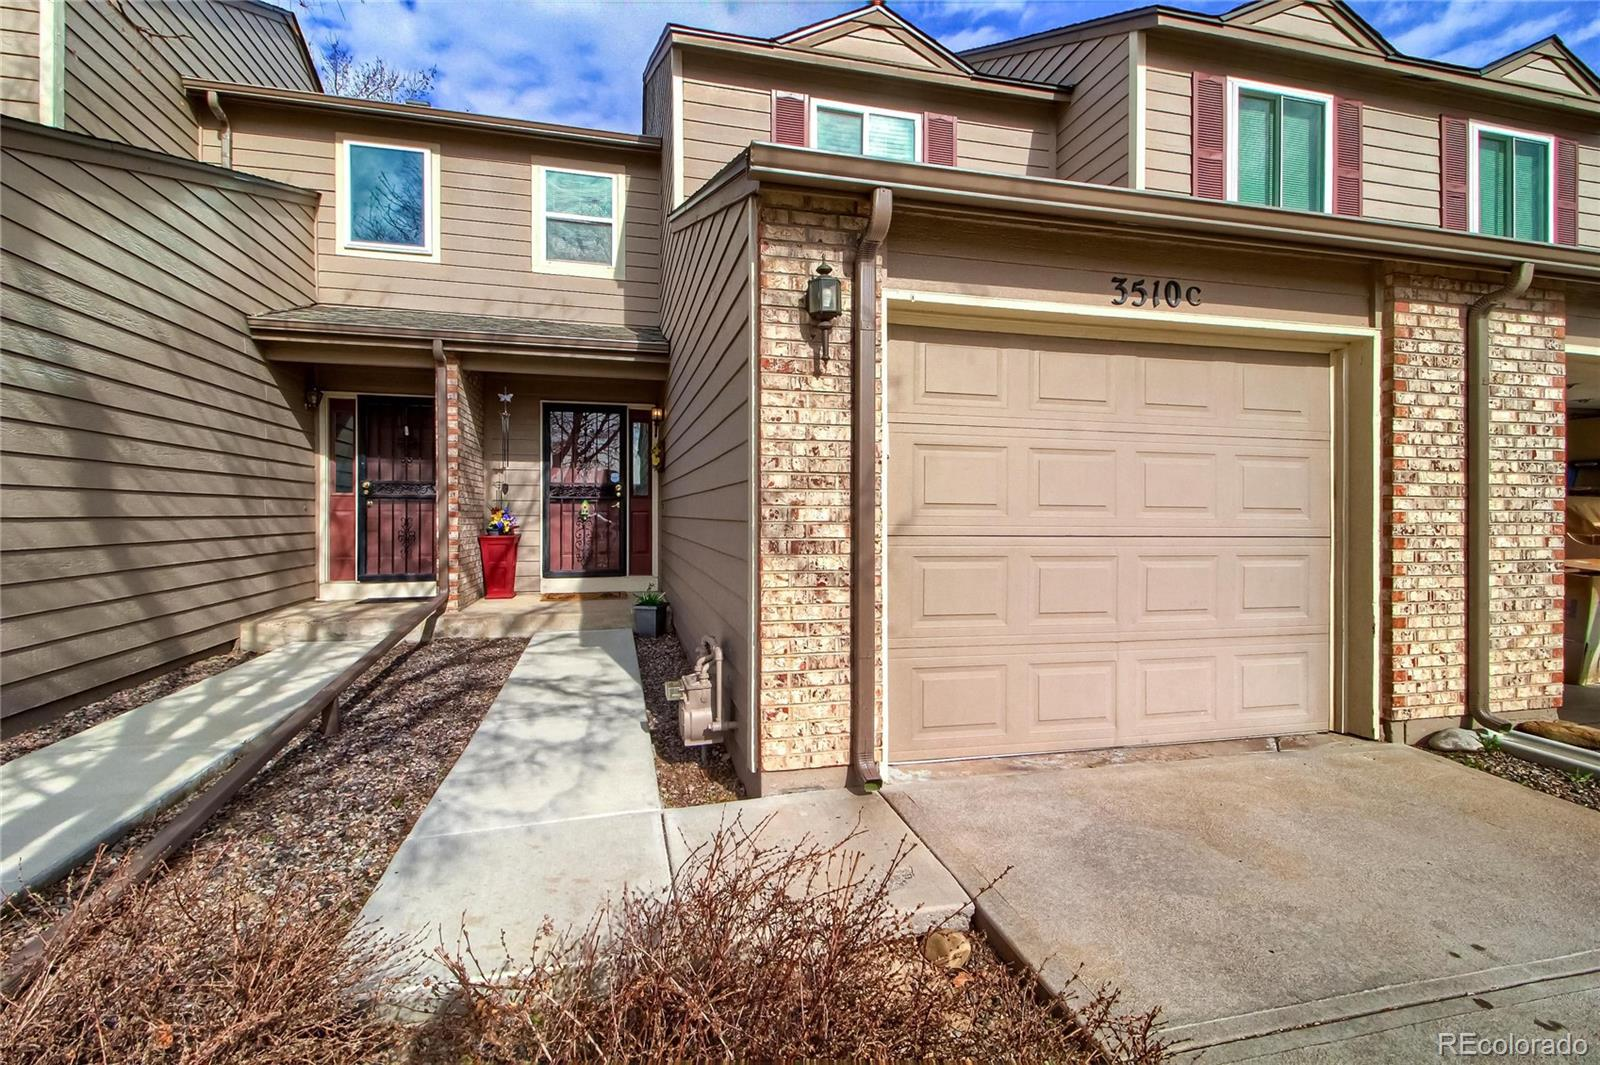 MLS# 3641043 - 35 - 3510 S Telluride Circle #C, Aurora, CO 80013